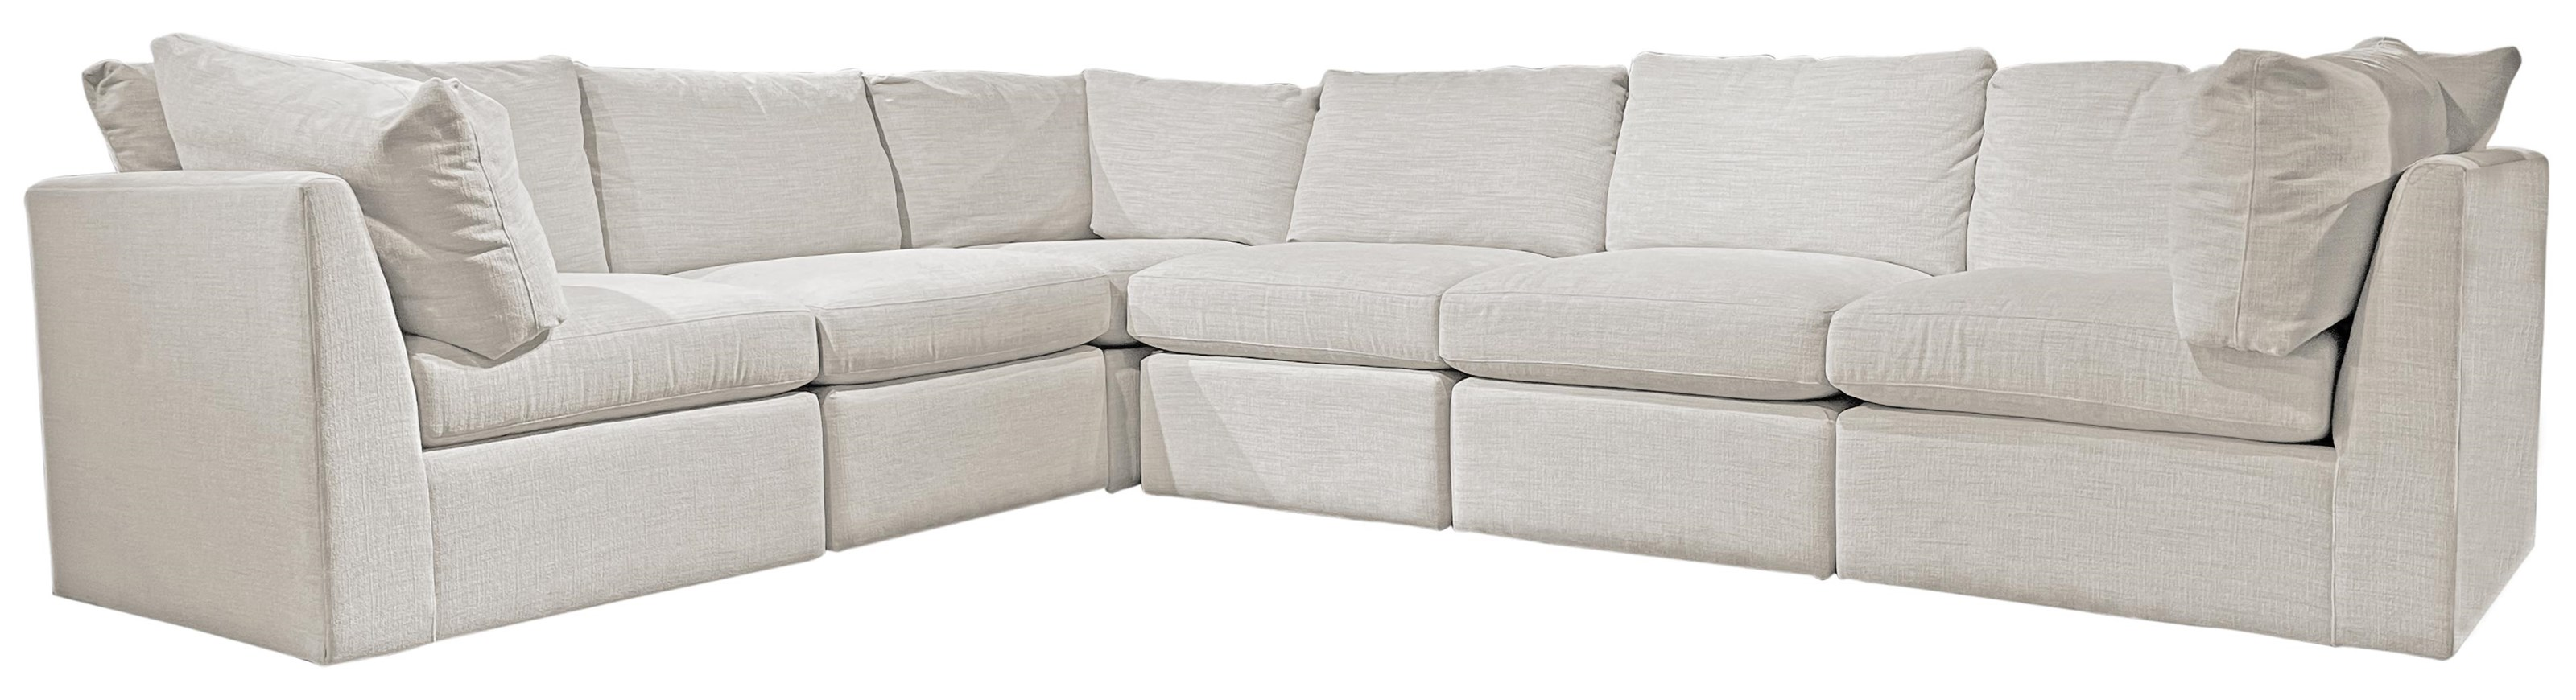 Slipped Pit Sectional Modular 6 Piece Sectional by McCreary Modern at C. S. Wo & Sons Hawaii